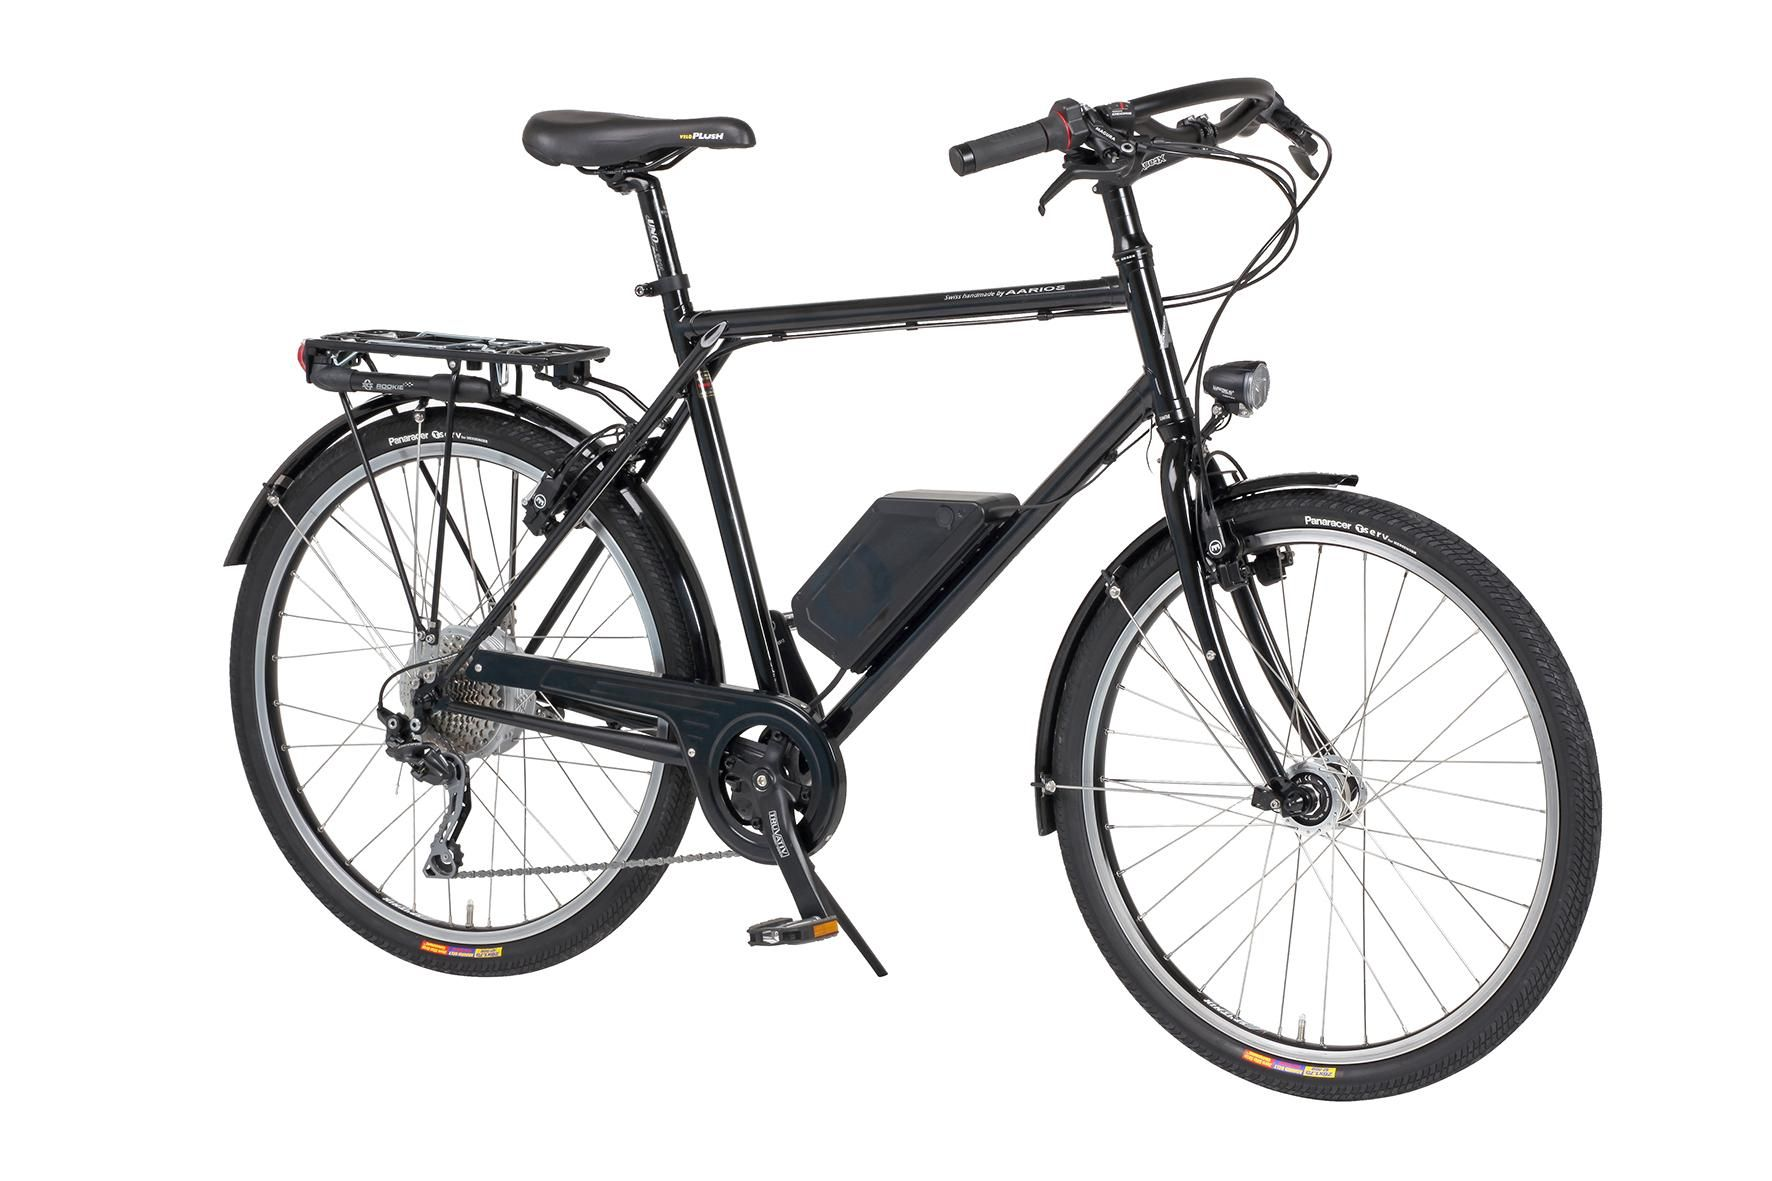 e bike 45 km h maxon mx25 mxurban bosch elektrovelo elektrobike fahrrad velo flyer. Black Bedroom Furniture Sets. Home Design Ideas